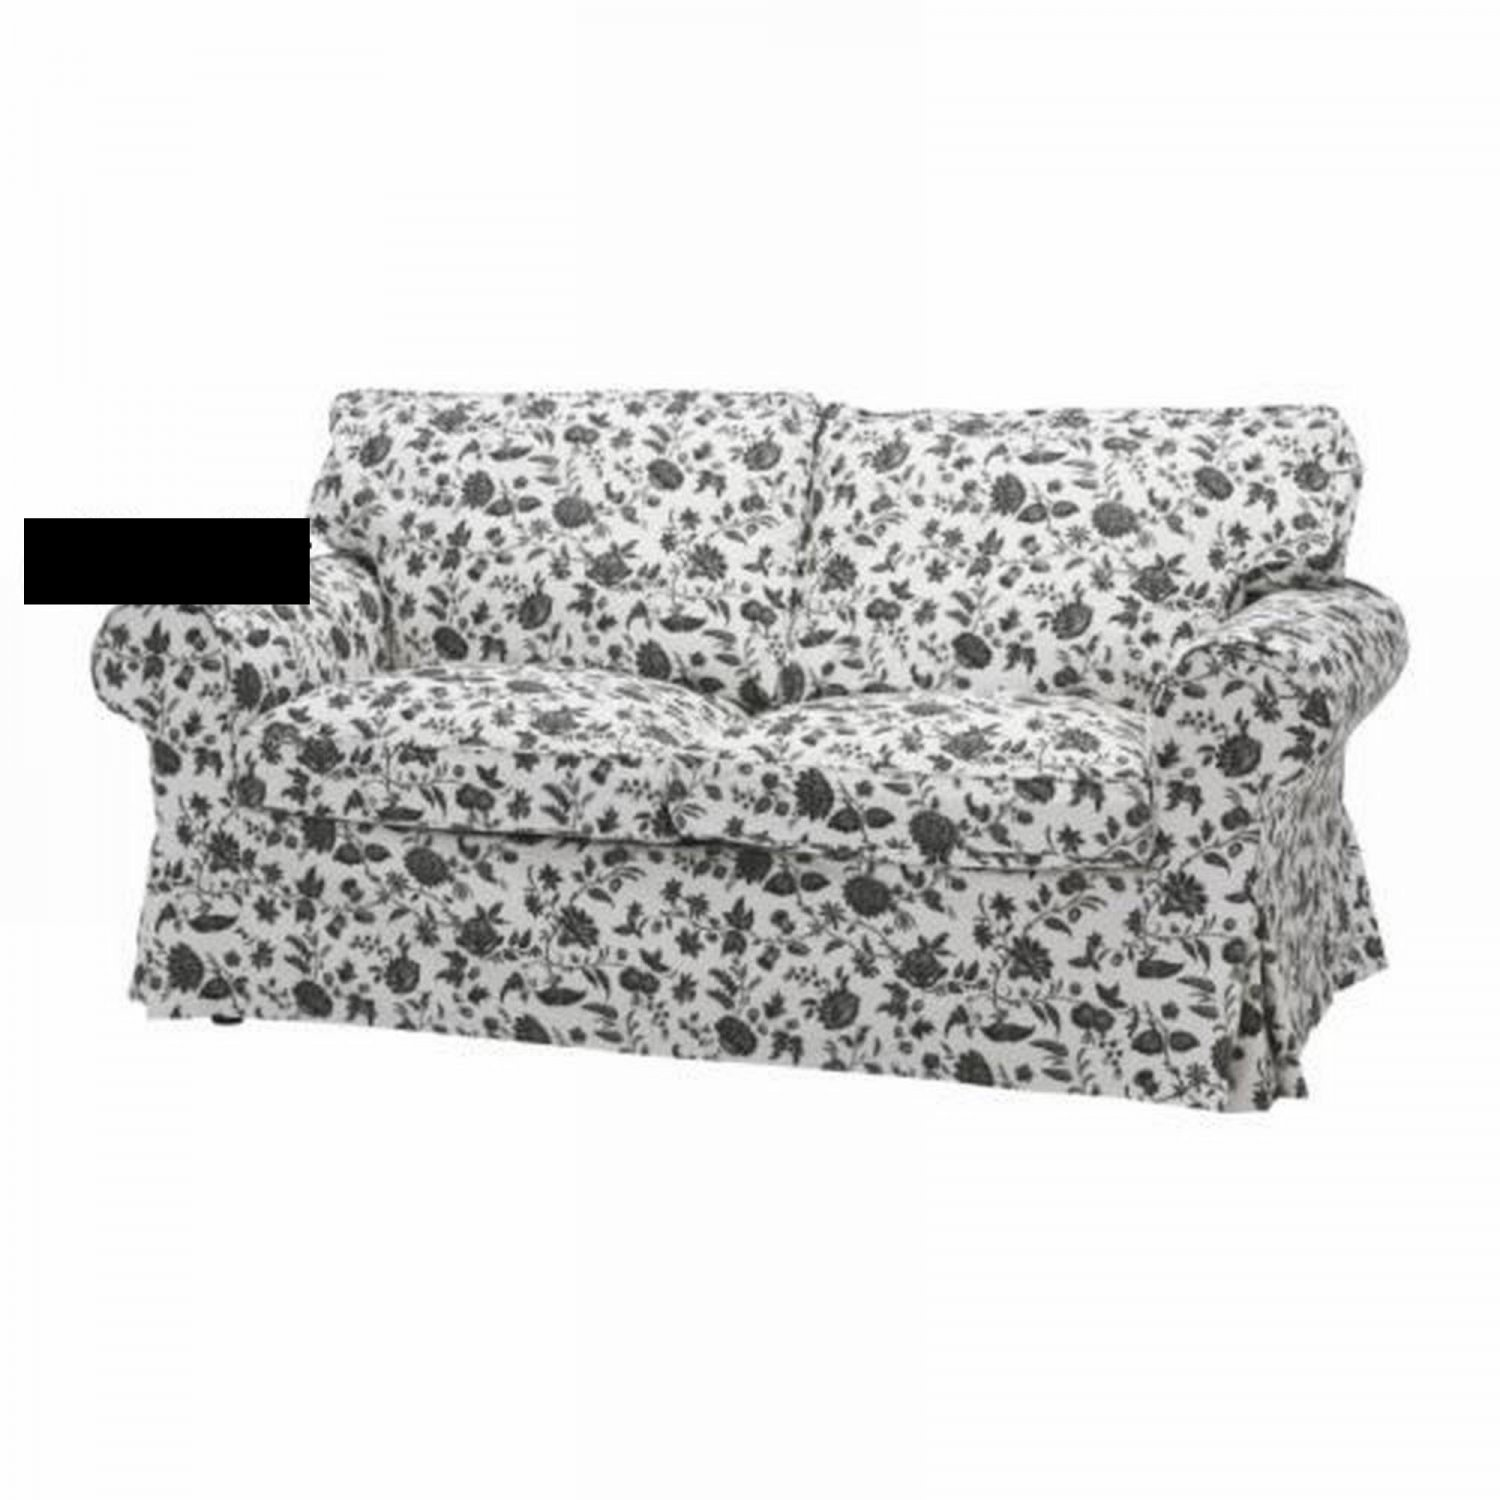 ikea ektorp sofa bed cover hovby black white bettsofa bezug slipcover sofabed floral. Black Bedroom Furniture Sets. Home Design Ideas